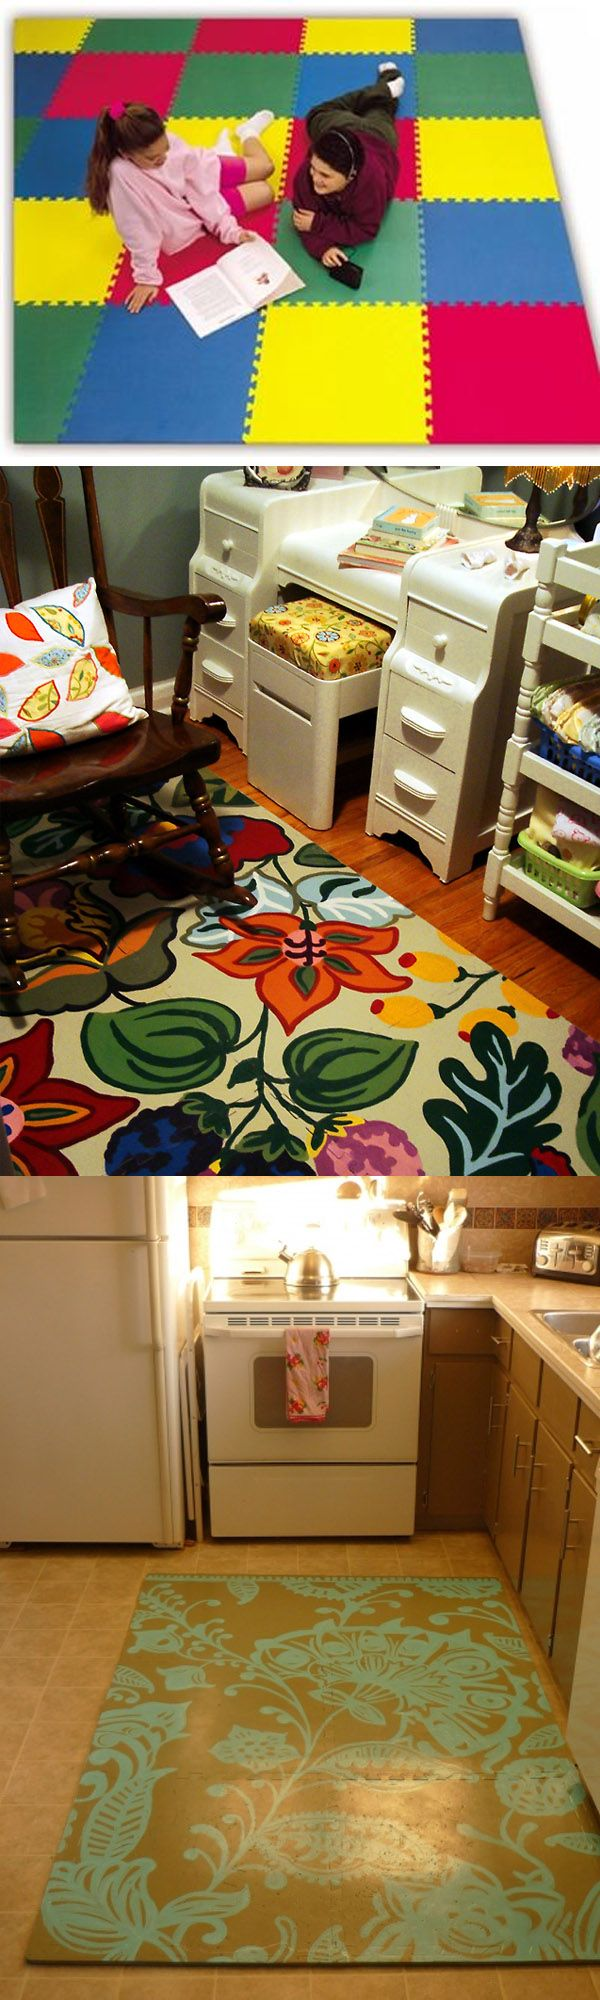 326 Best I Could Make This Images On Pinterest Good Ideas Knob Tube Switches Shared Neutral Doityourselfcom Community Diy Painted Foam Play Mats The Smooth Side Of Mat